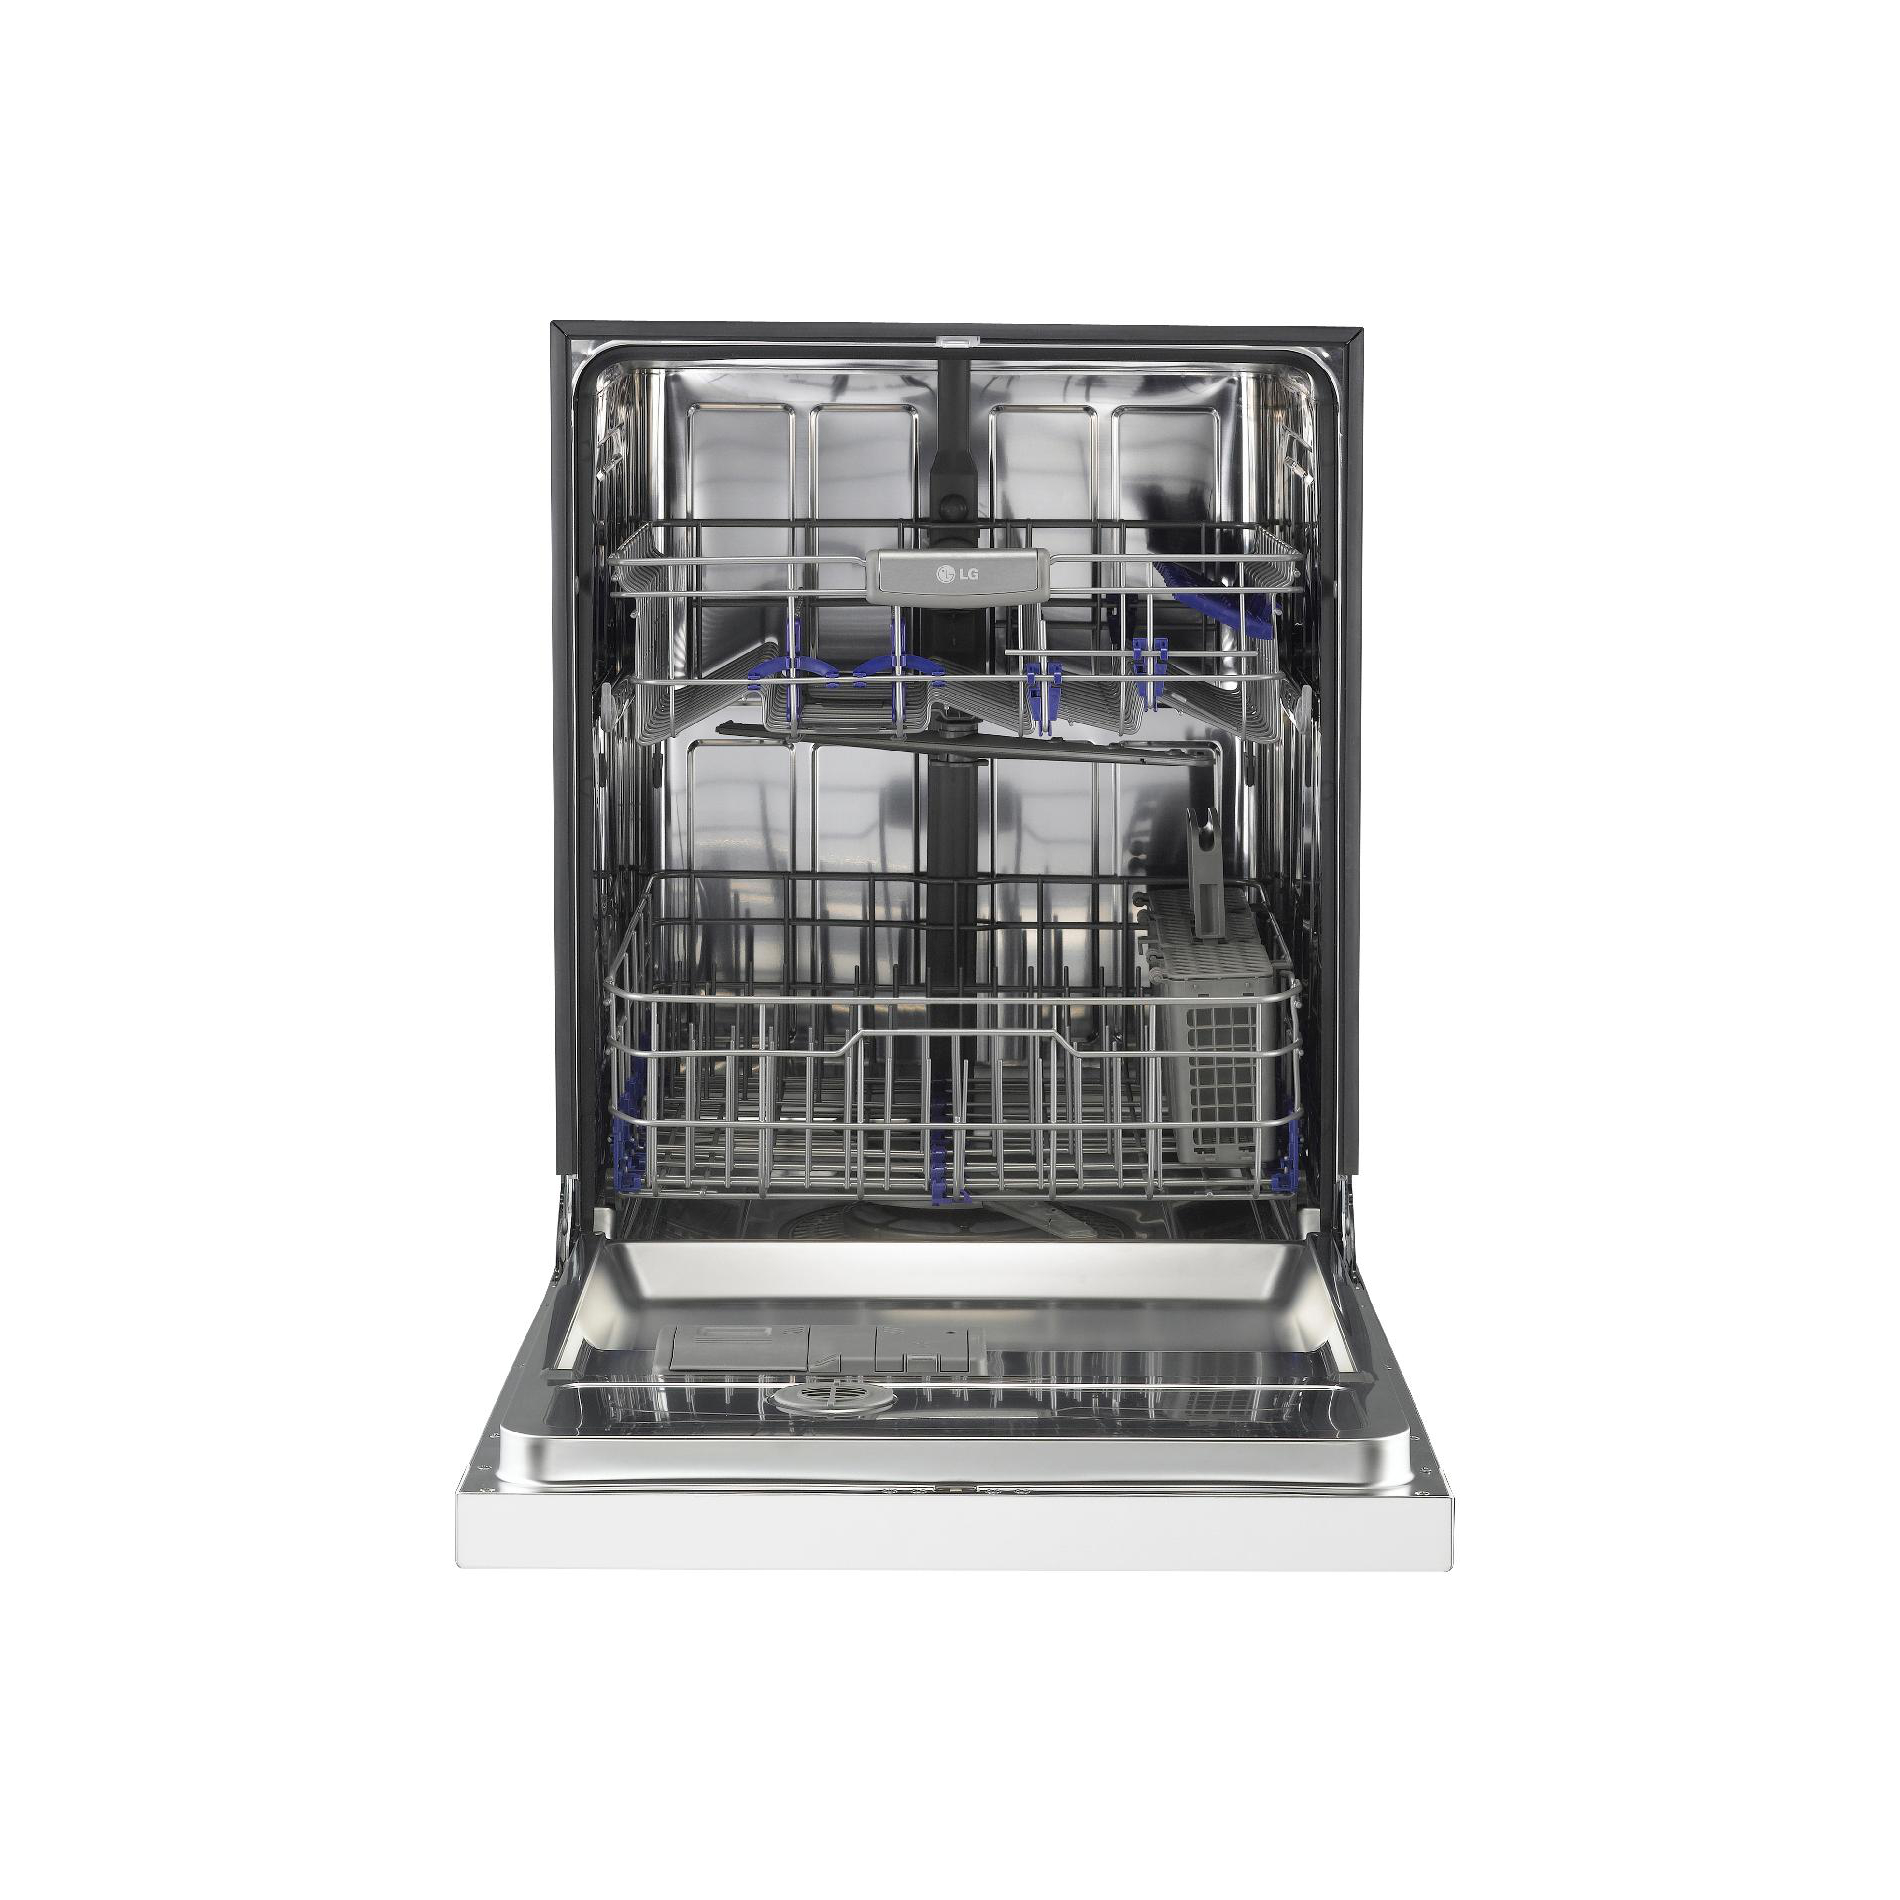 "LG LDS5540WW 24"" Built-In Dishwasher w/ EasyRack™ Plus System - White"